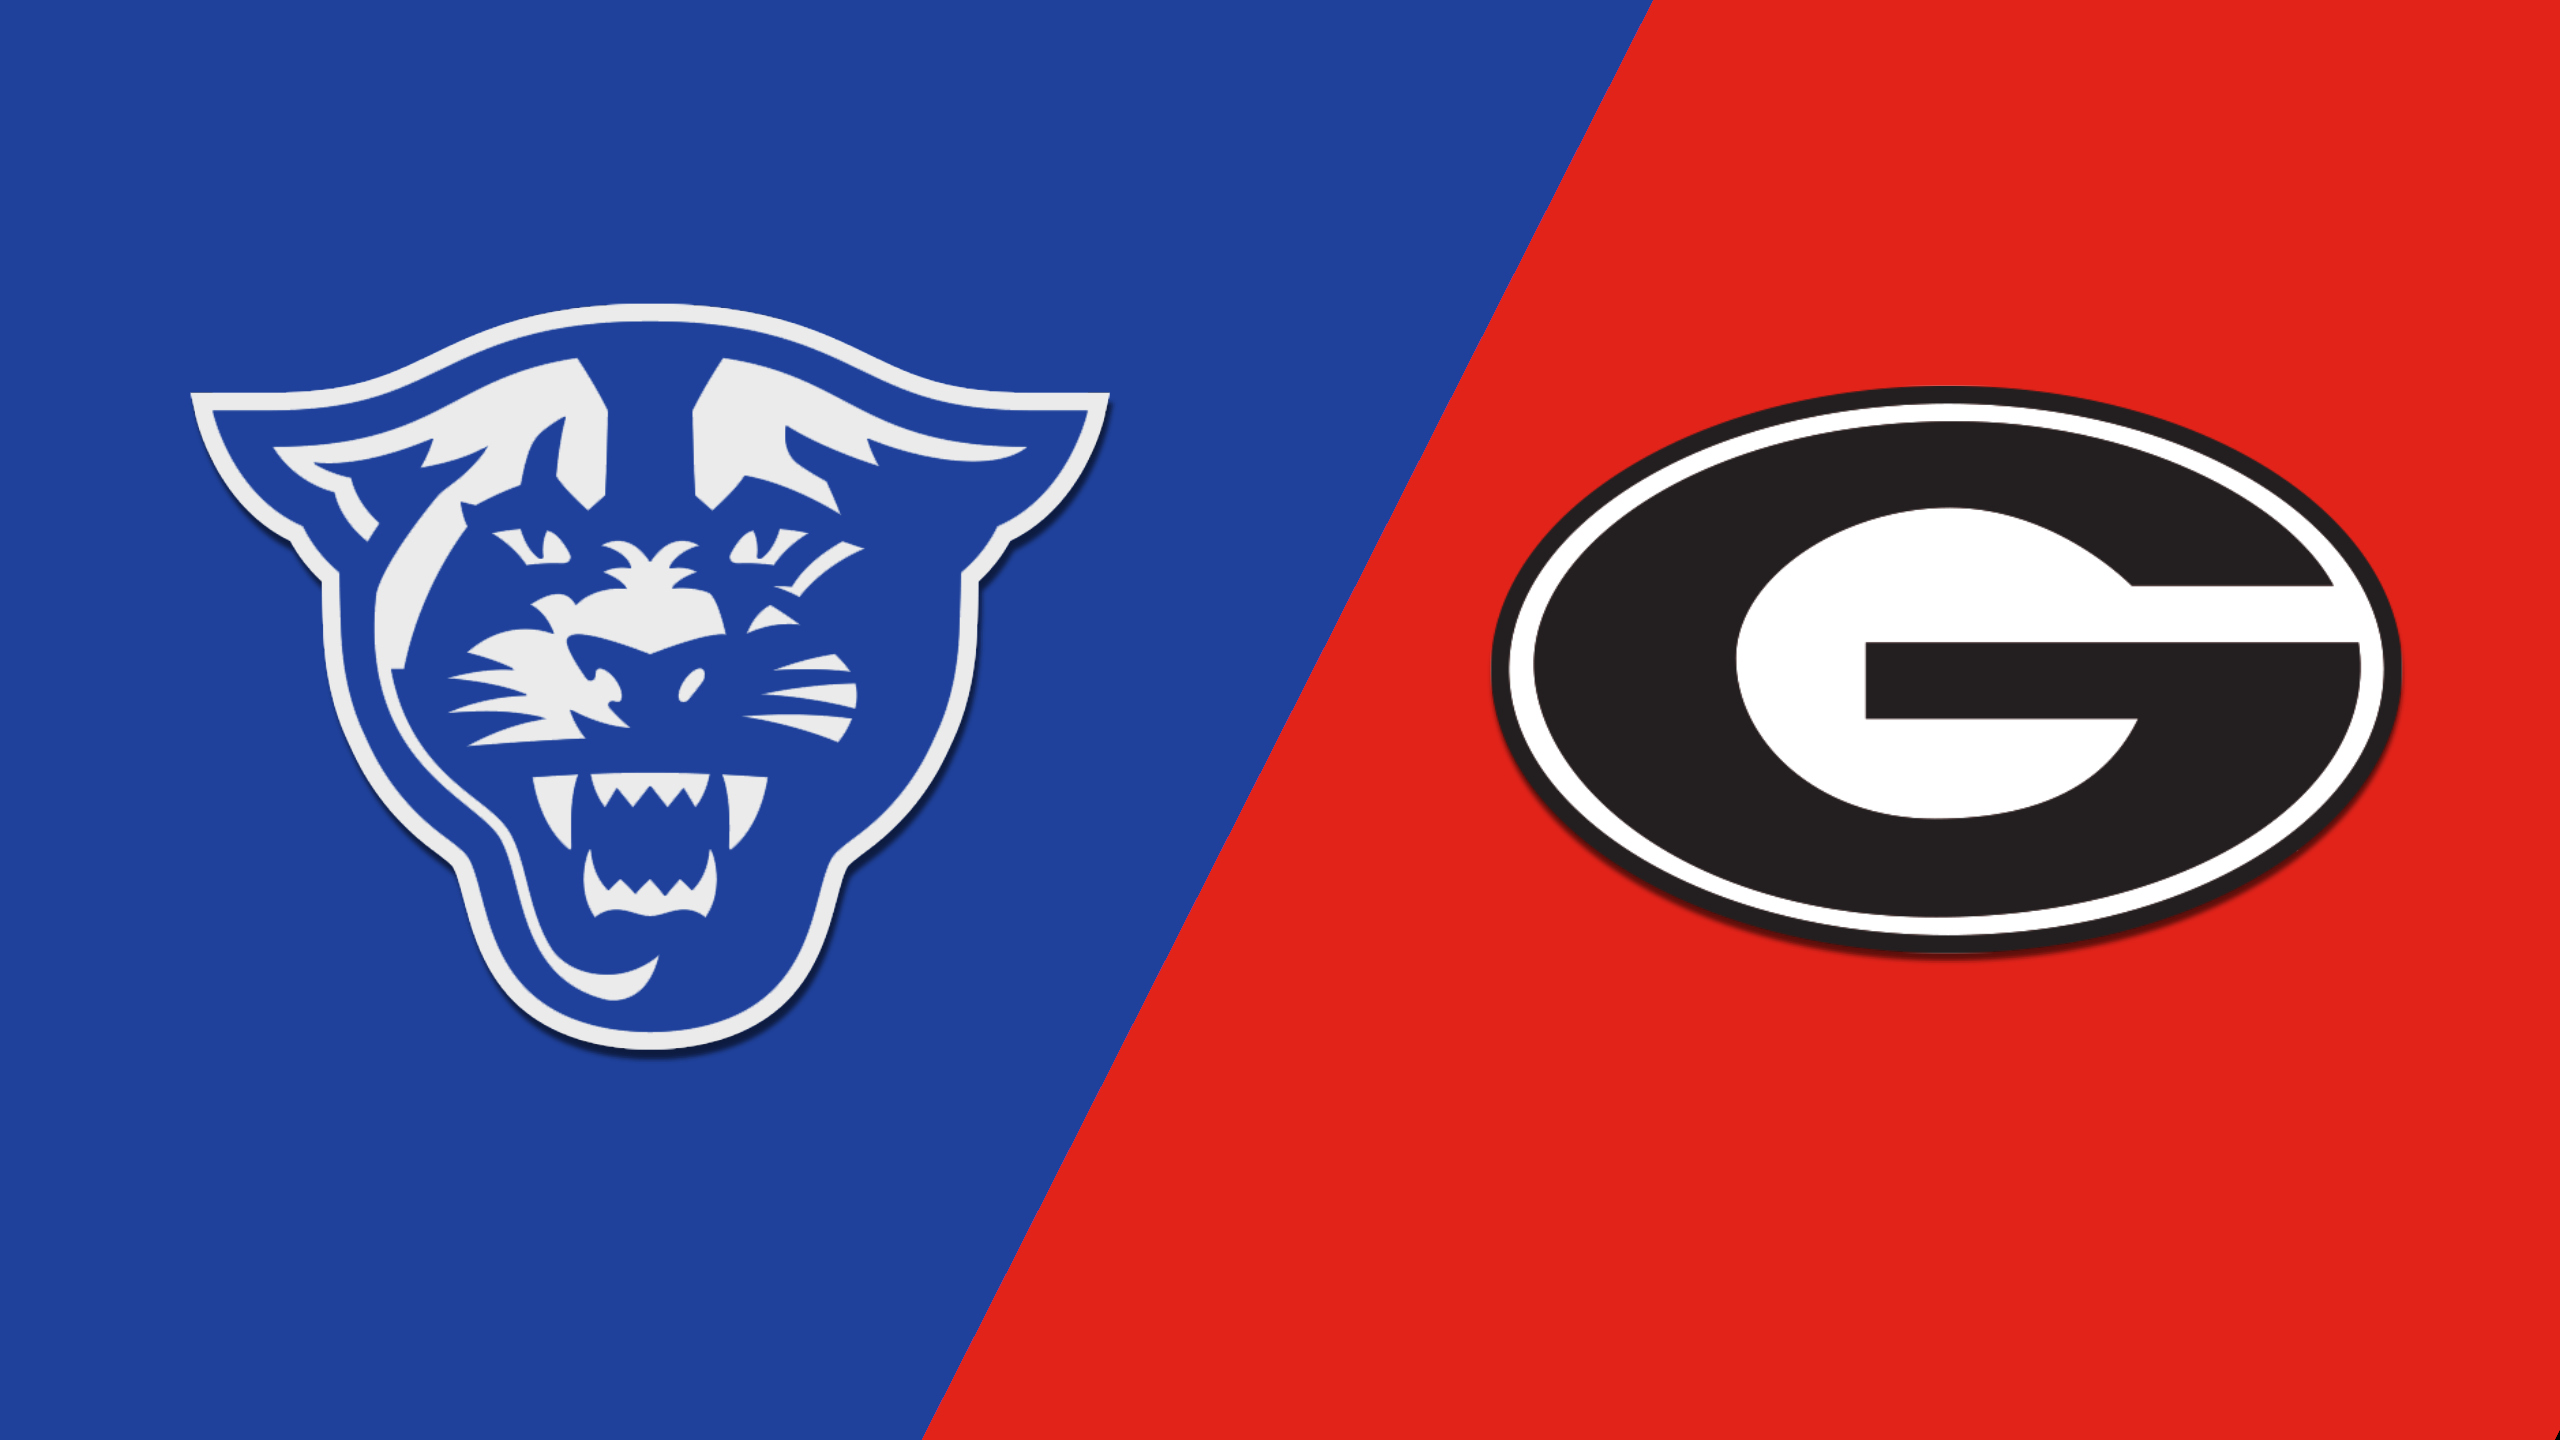 Georgia State vs. Georgia (Softball)